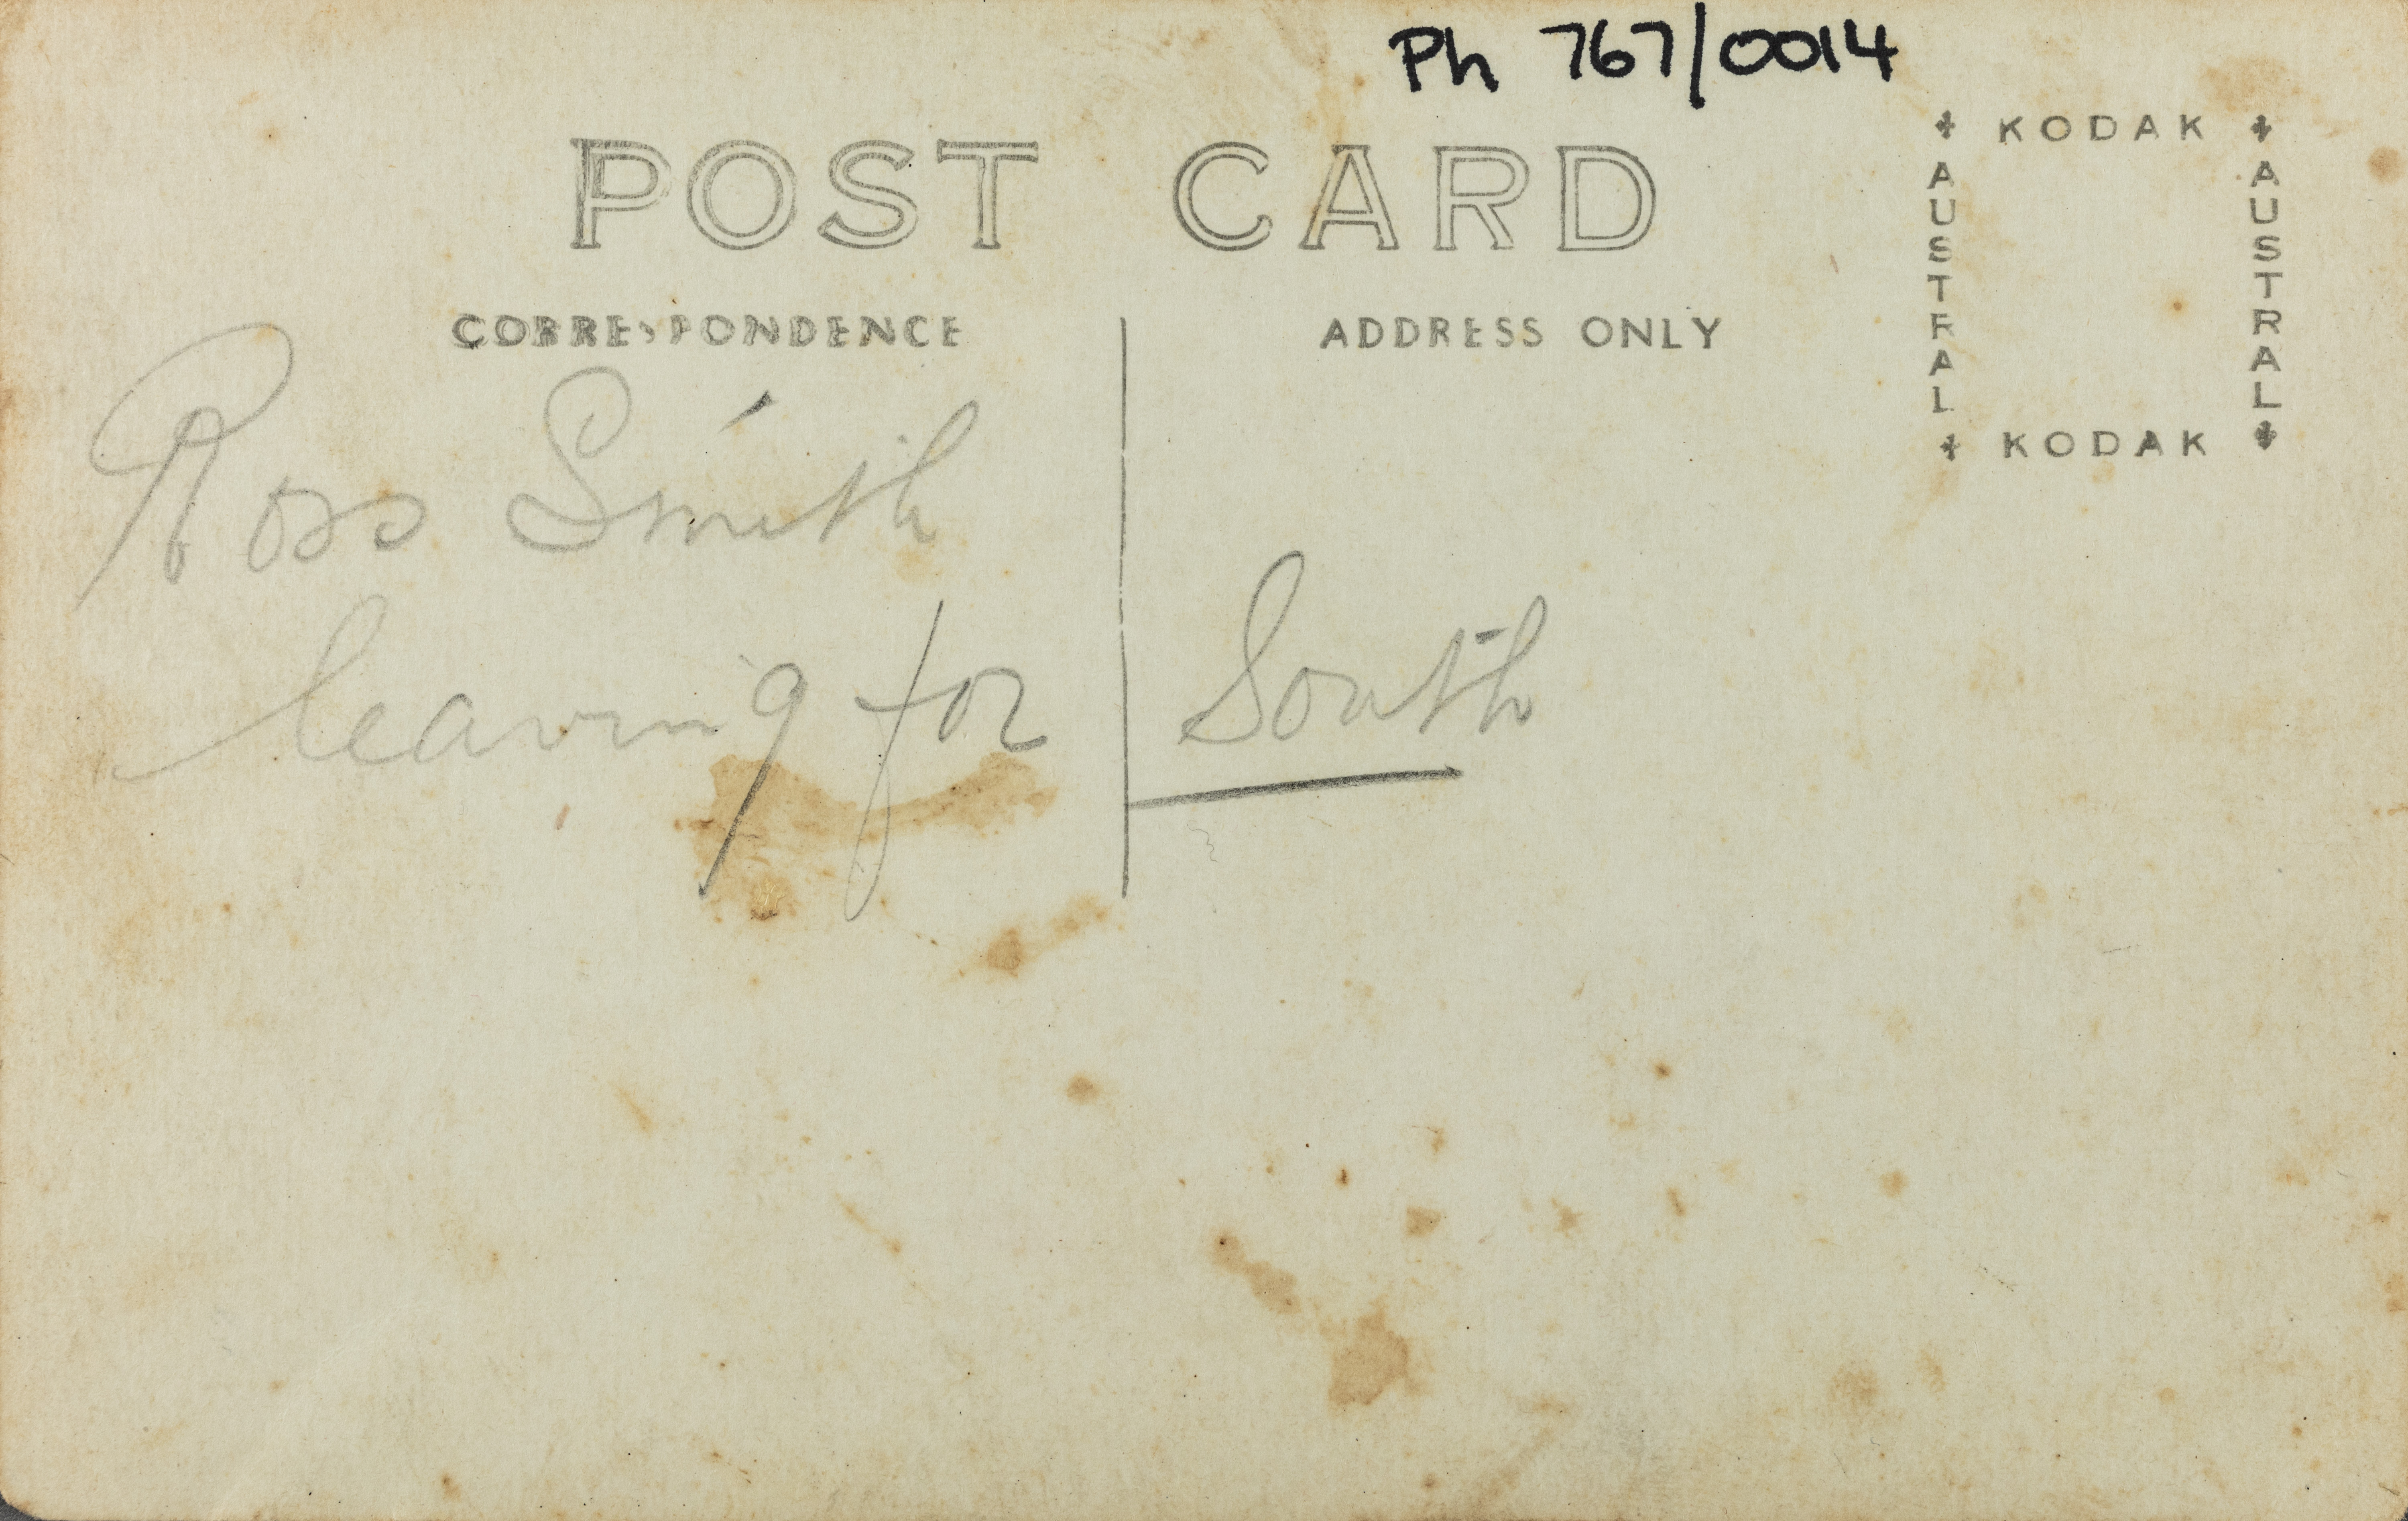 Text on reverse: Ross Smith leaving for South